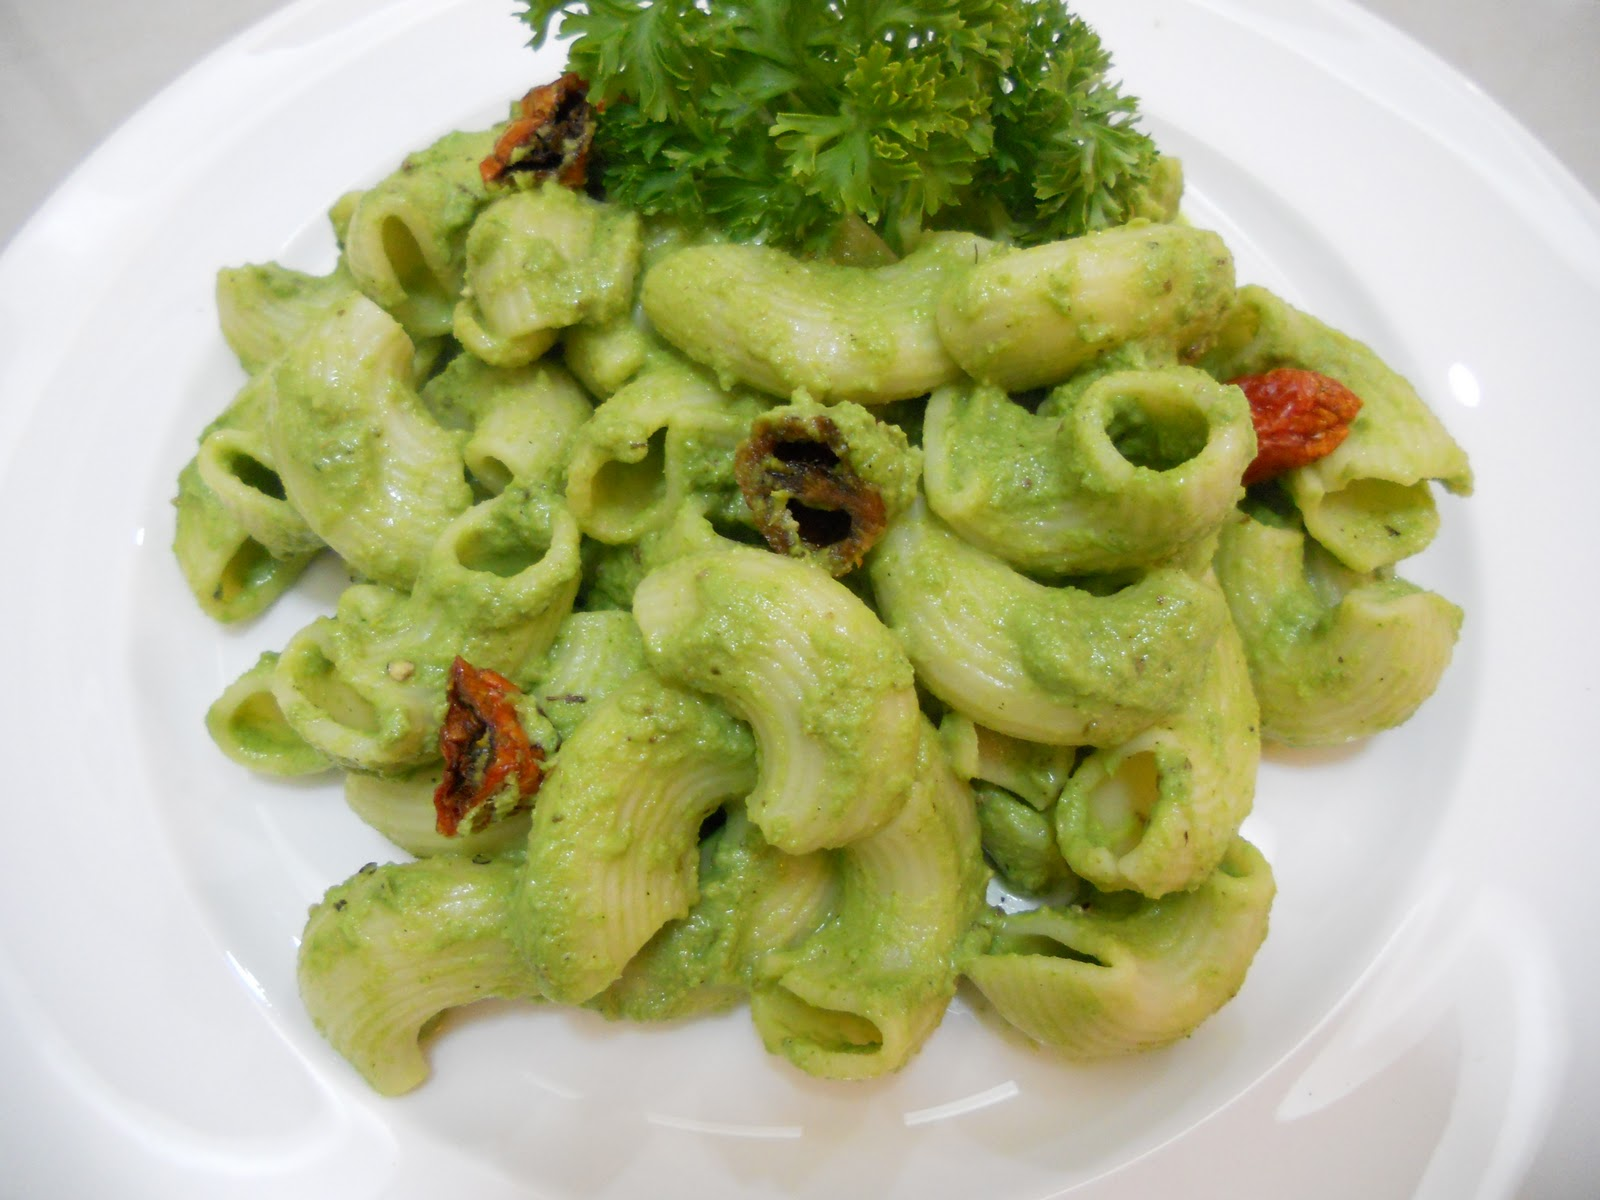 My Cooking diary : Pasta with parsley and walnut pesto